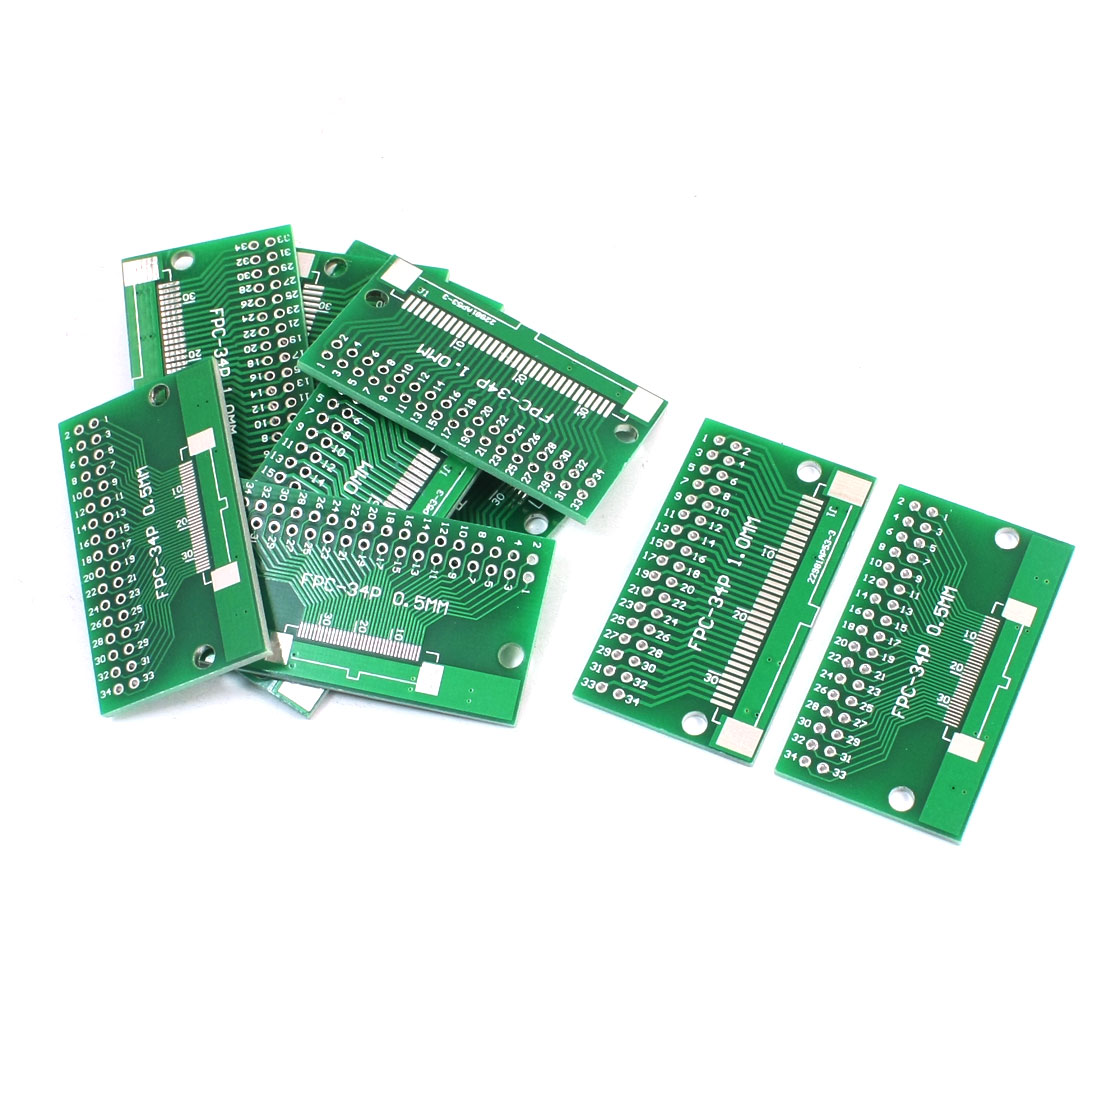 10 Pcs FPC-34P FFC-34P 0.5mm 1mm to DIP34 2.54mm Dual Sides IC PCB Adapter Plate Converter Board Socket